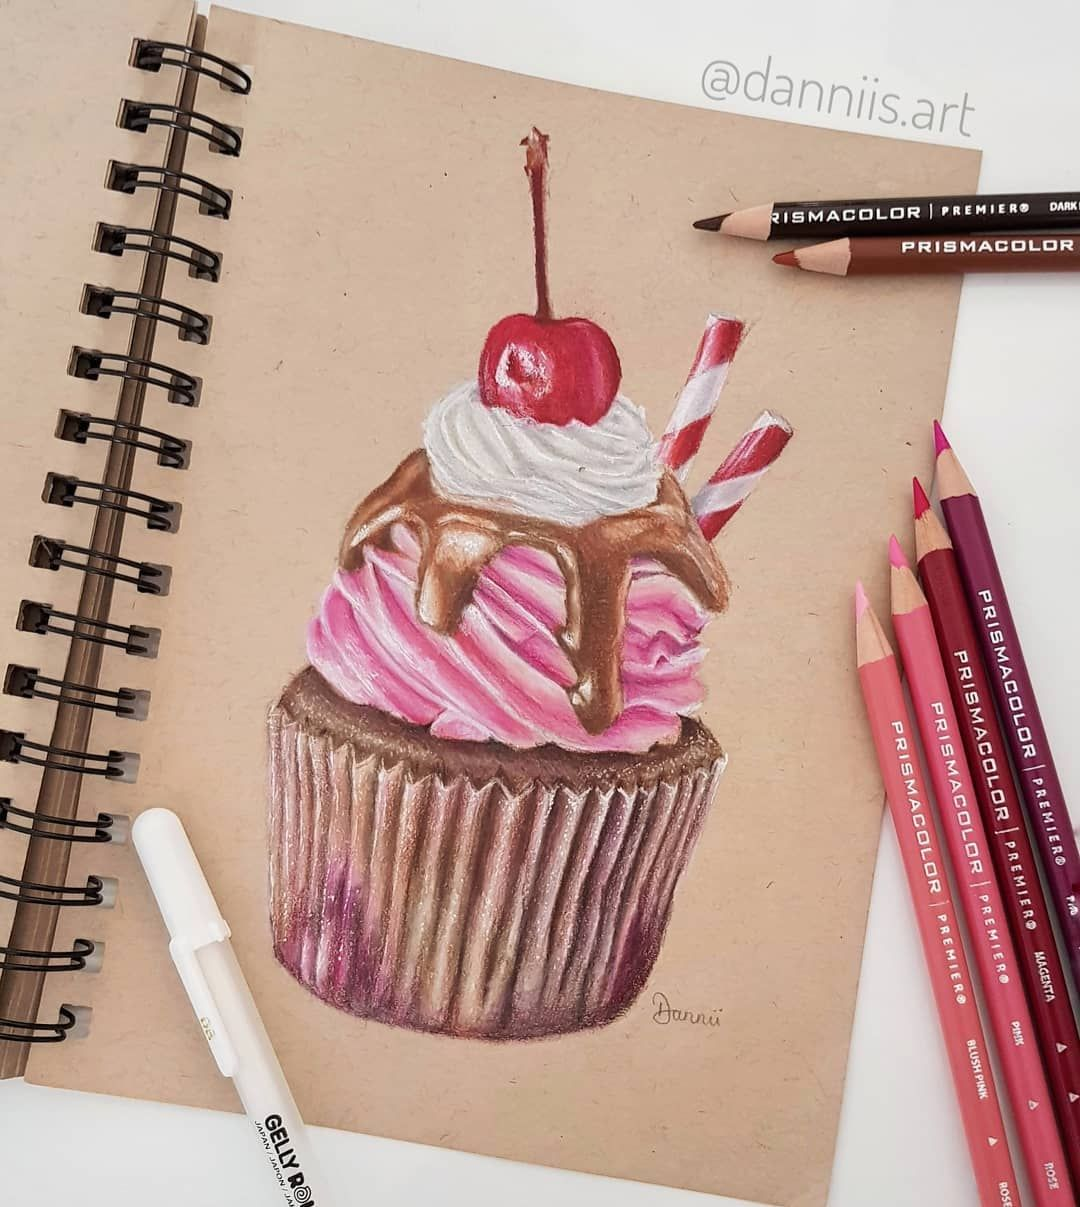 New The 10 Best Home Decor With Pictures Here S The Finished Drawing Of My Cupcake Color Pencil Illustration Color Pencil Art Color Pencil Drawing